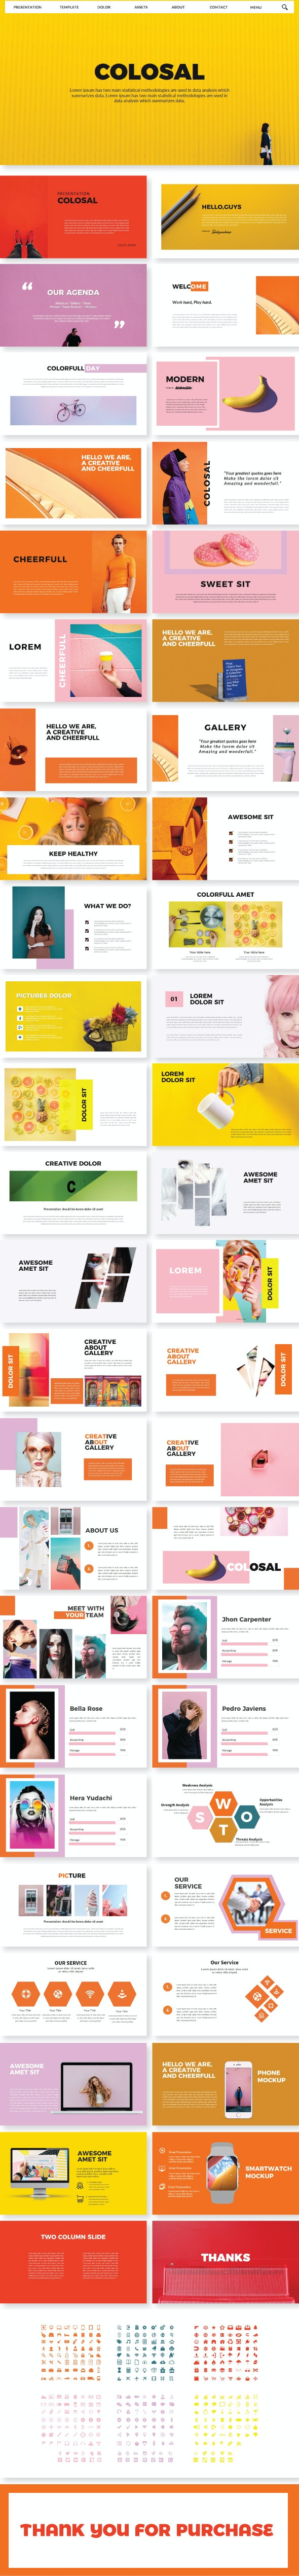 Colosal Power Point Template - Creative PowerPoint Templates